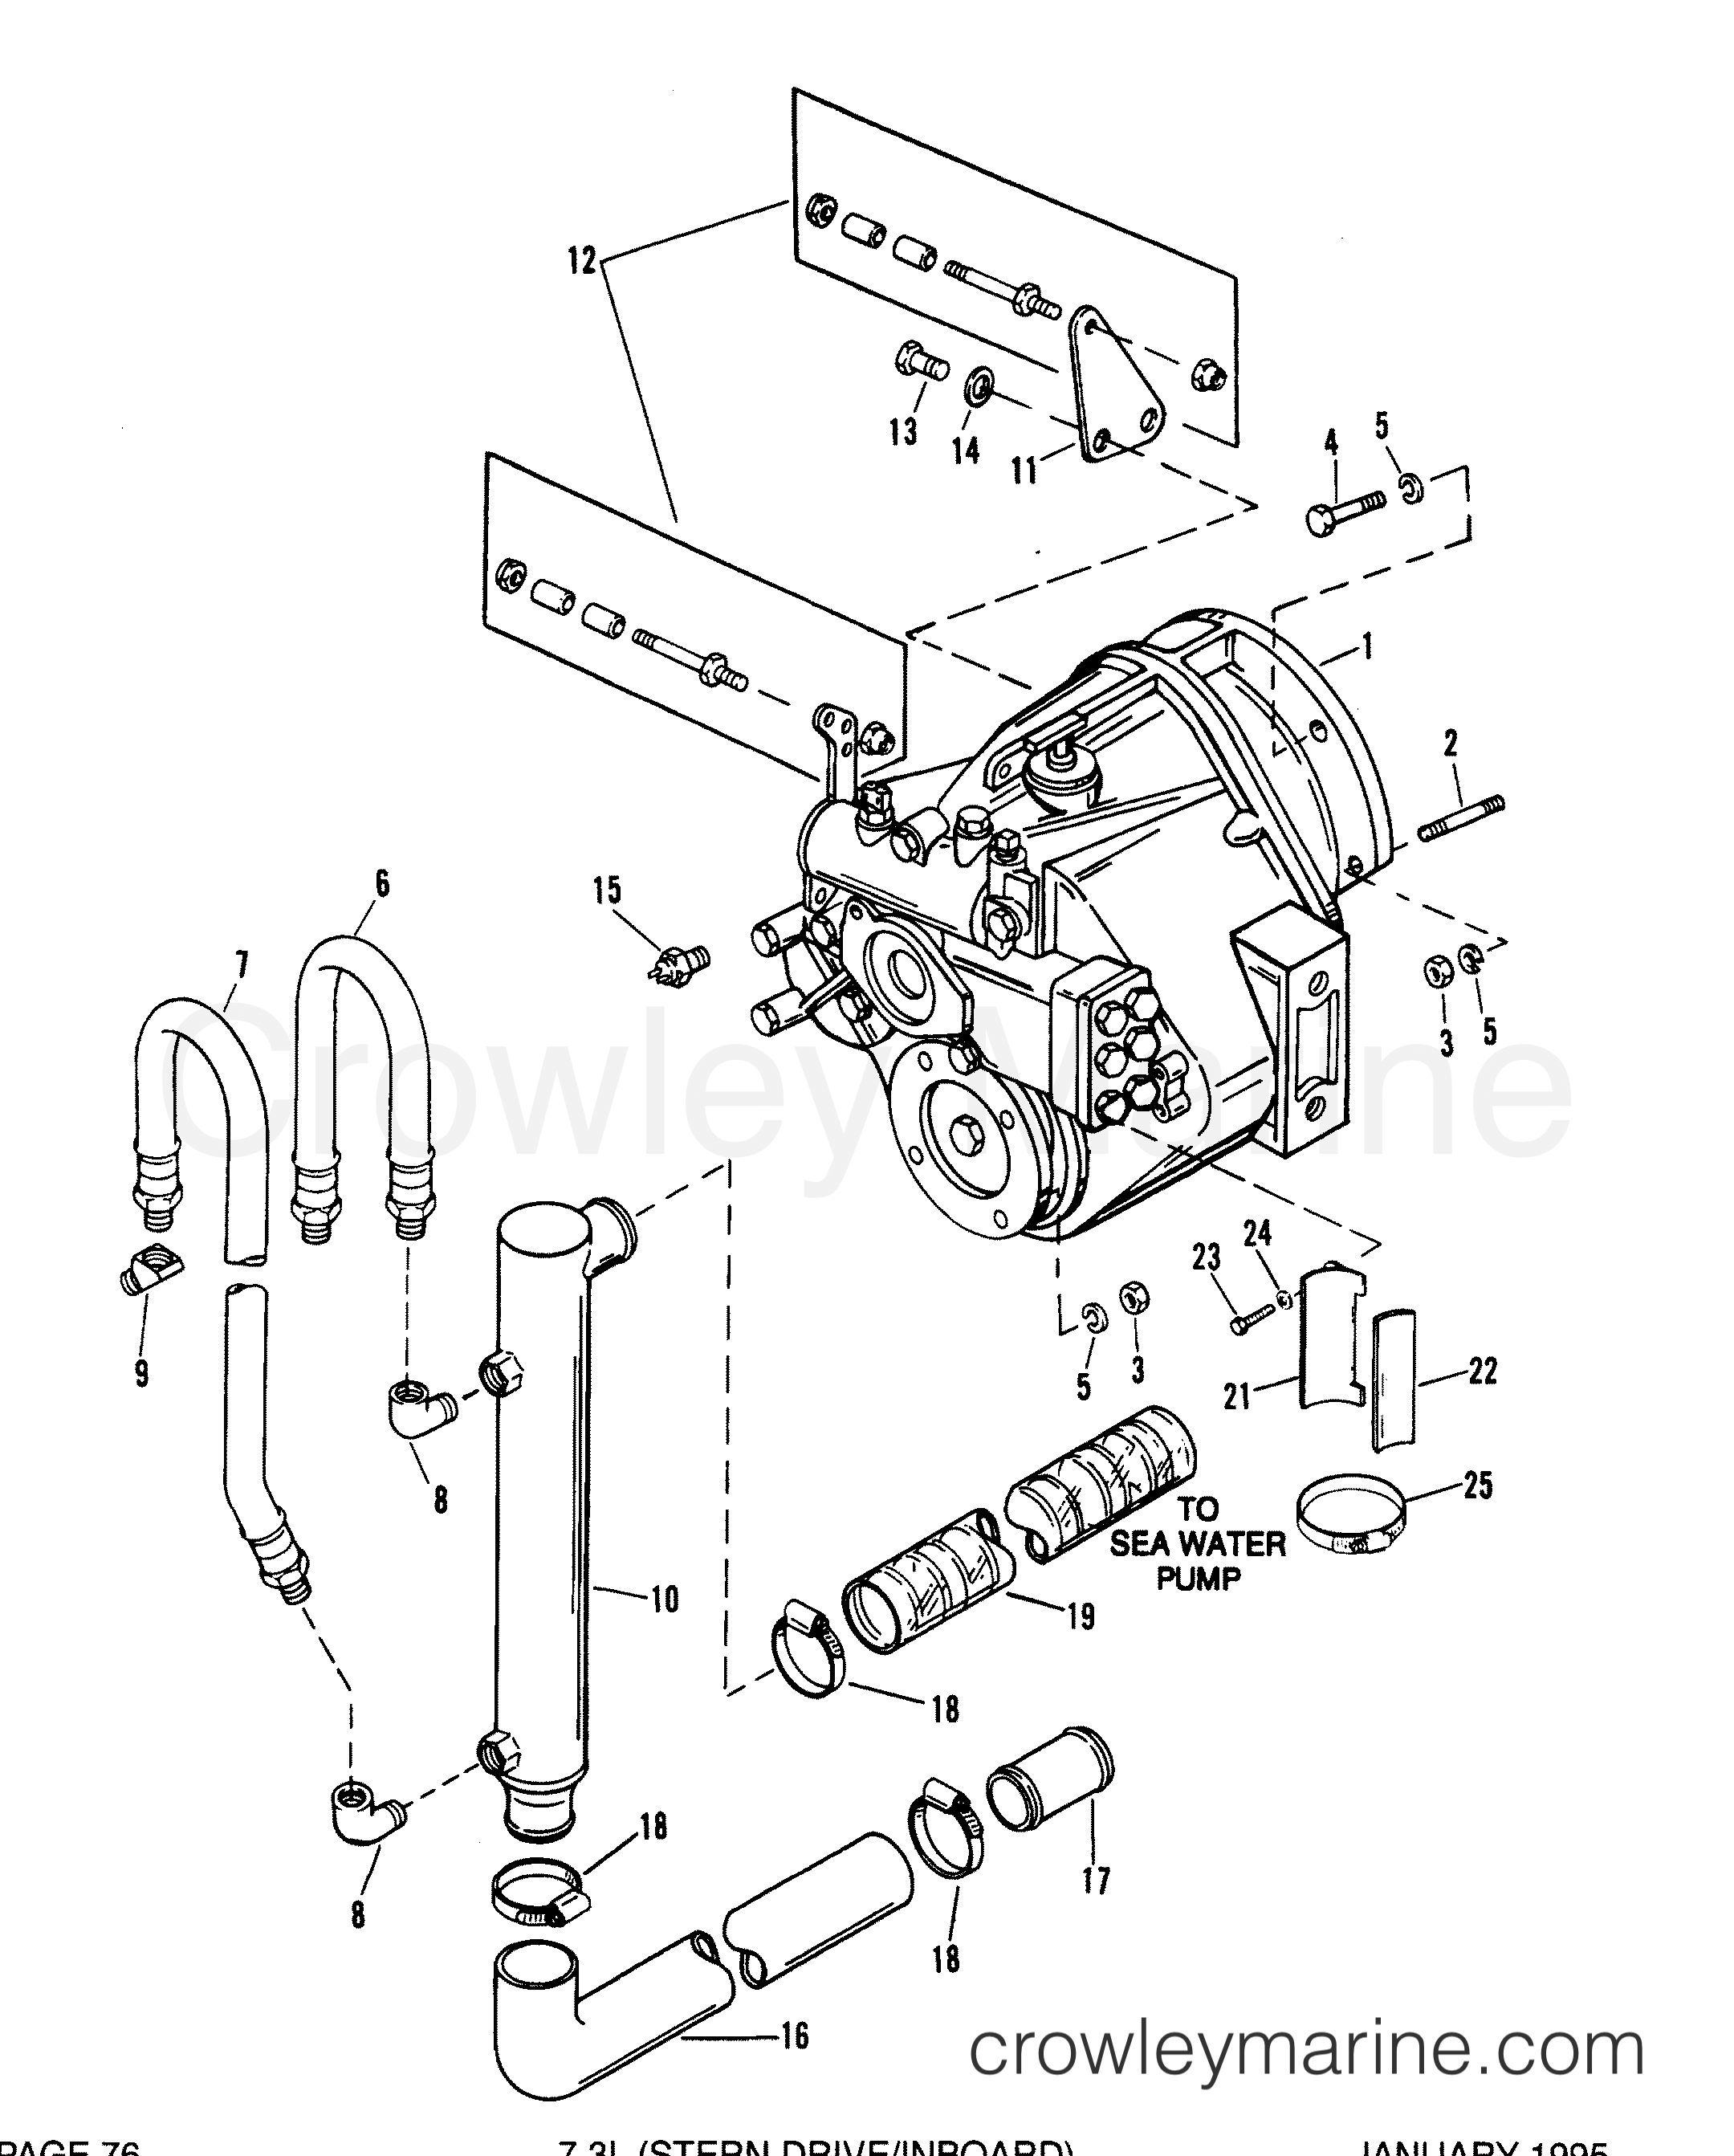 Mercury Transmission Diagrams : Transmission and related parts inboard mercruiser